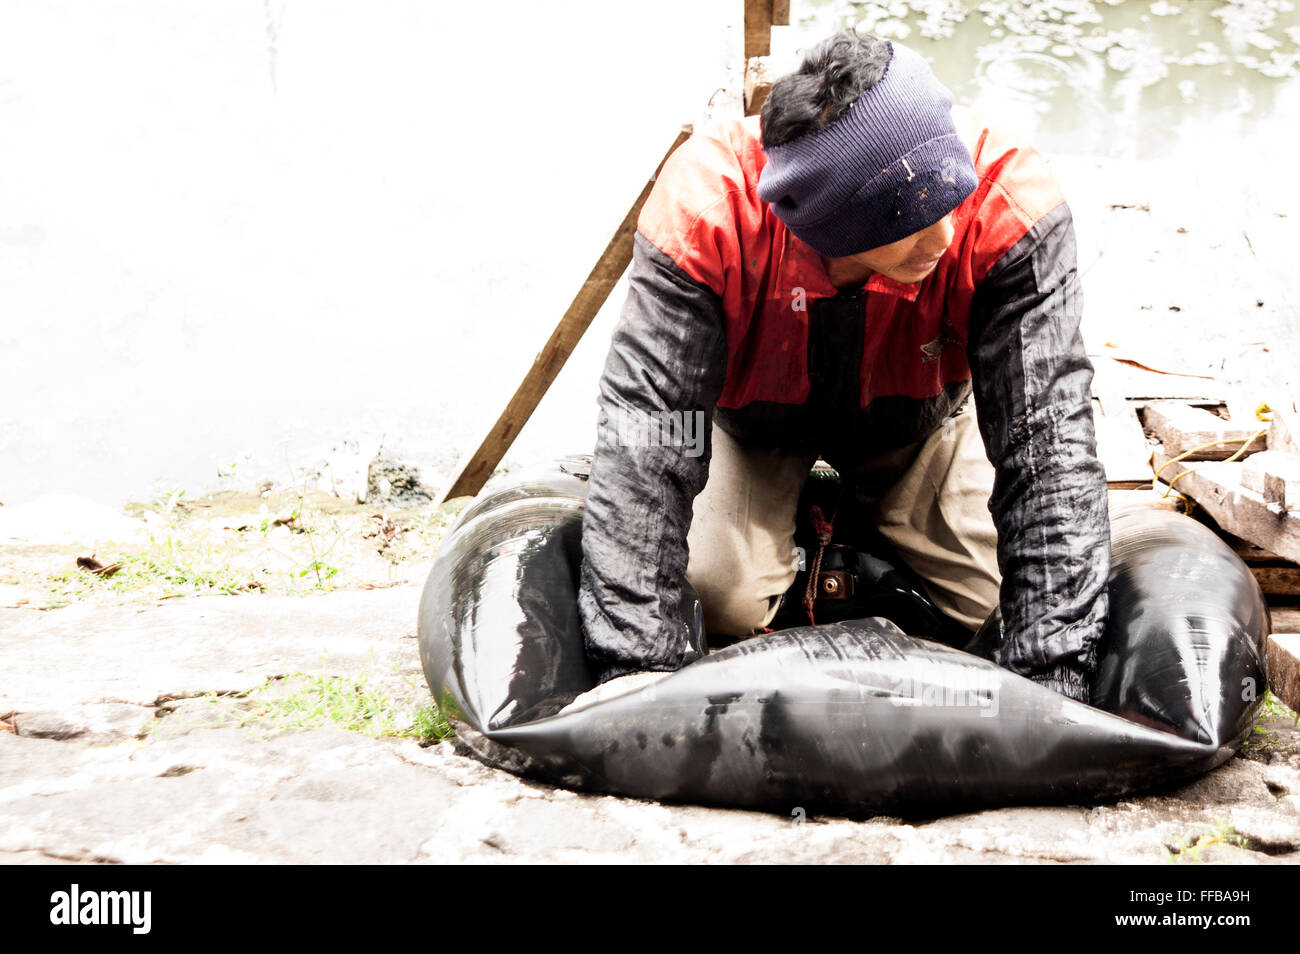 Jakarta, Indonesia. 11th Feb, 2016. Fish Hunter sprucing factitious canoe at River side in Jakarta, Indonesia. Fishes Stock Photo